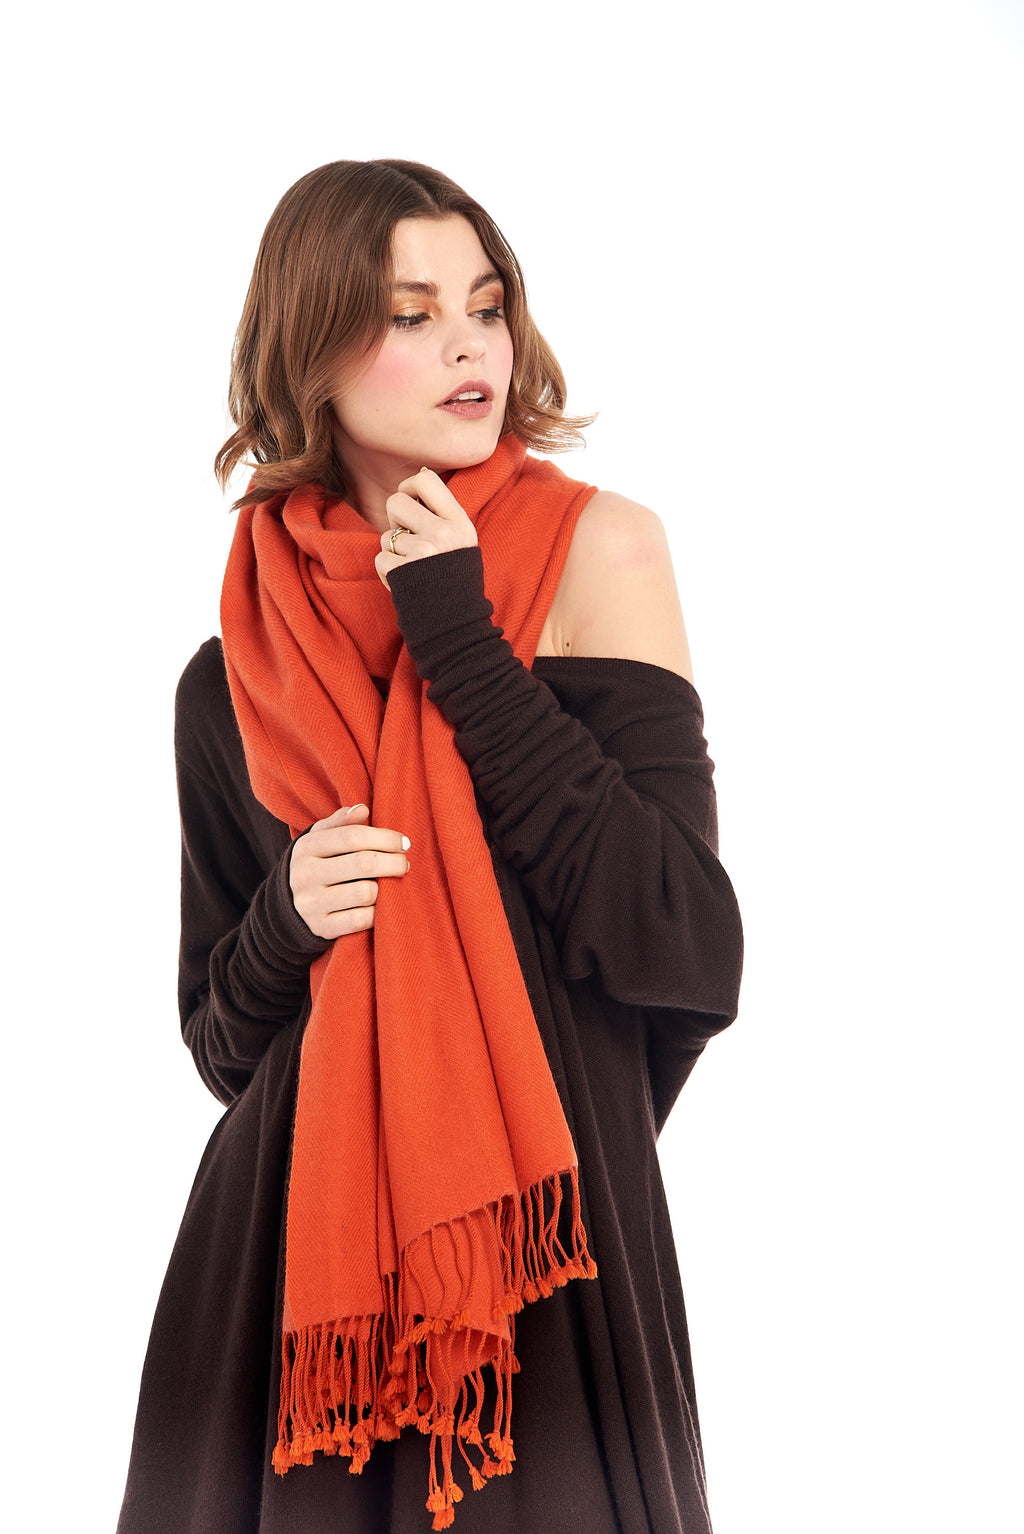 100% Pure Mongolian Luxury Cashmere Herringbone Shawl Spicy Orange - MUDRA